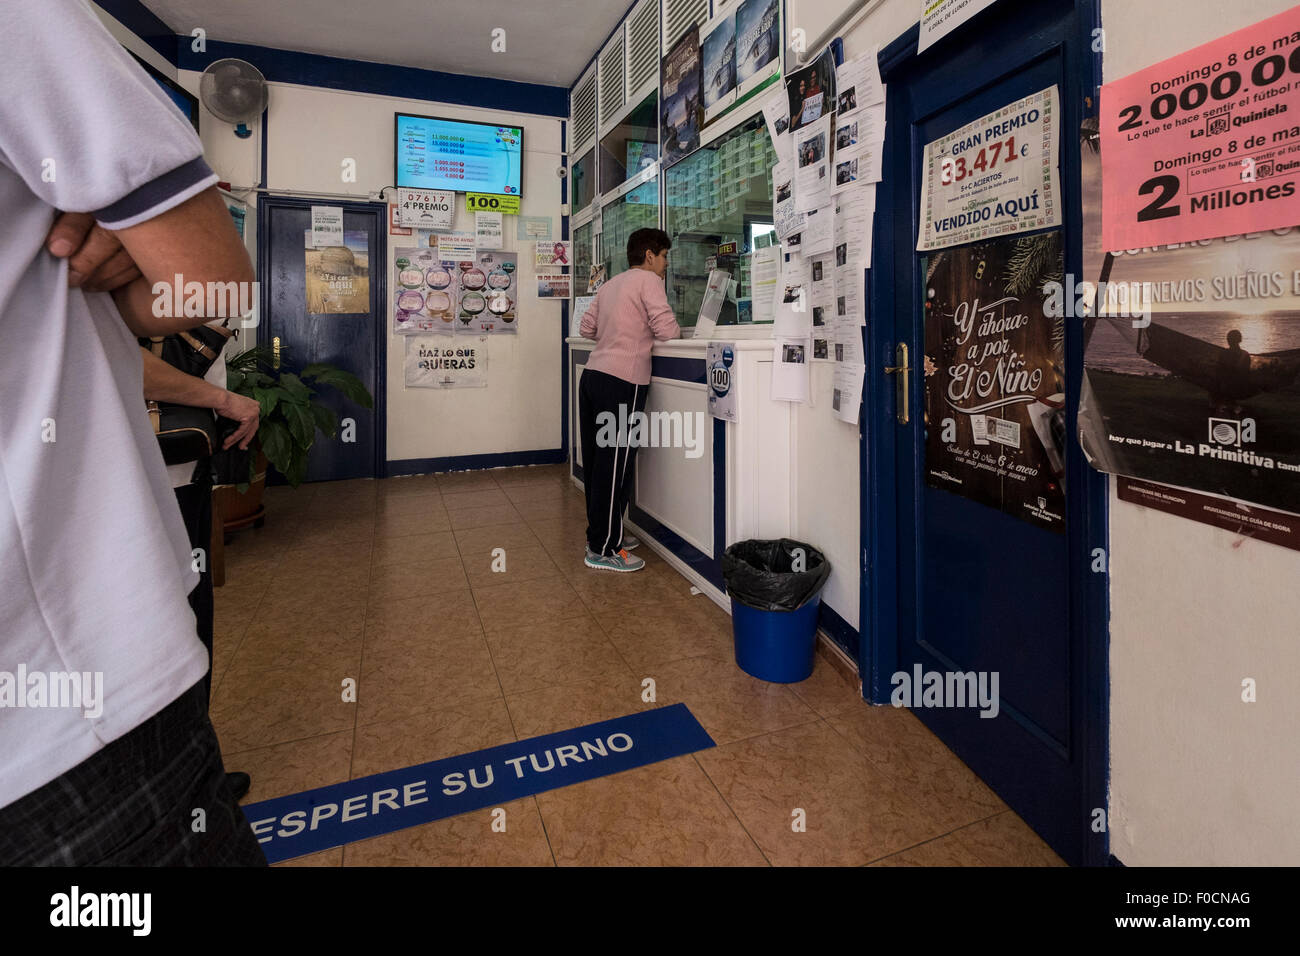 Spanish lottery office selling tickets to play in the